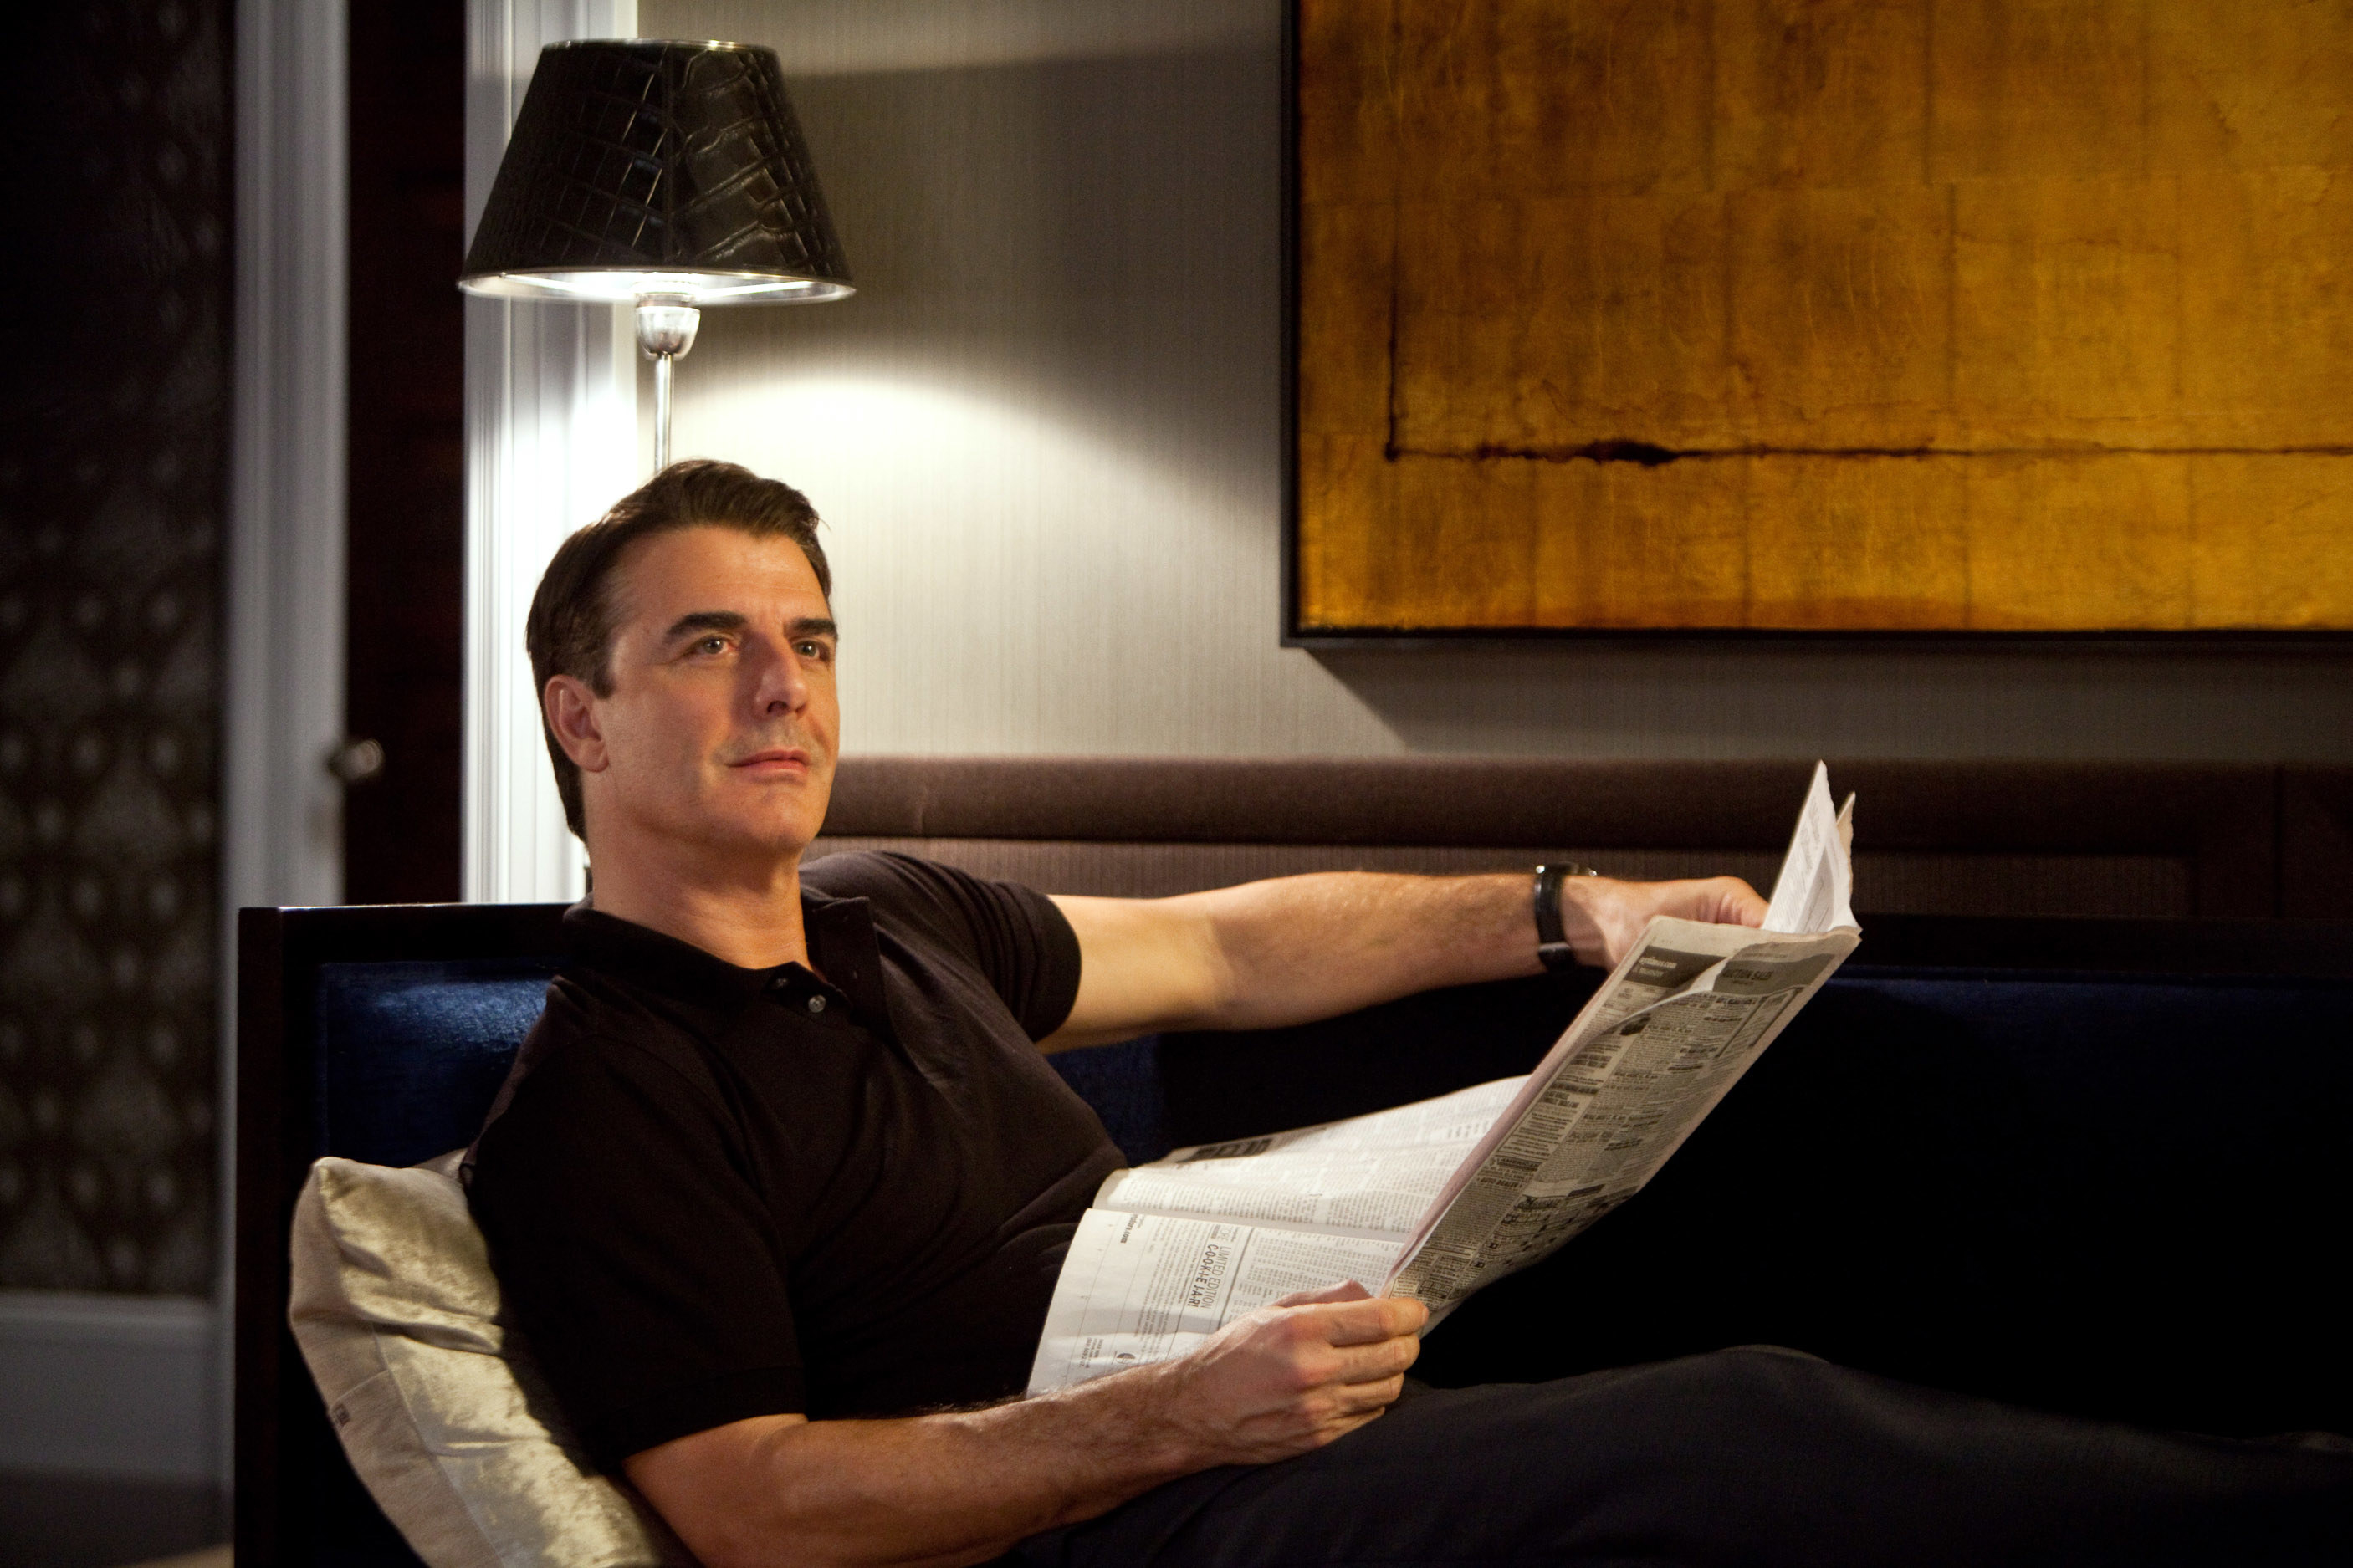 Mr Big reading a newspaper on the couch